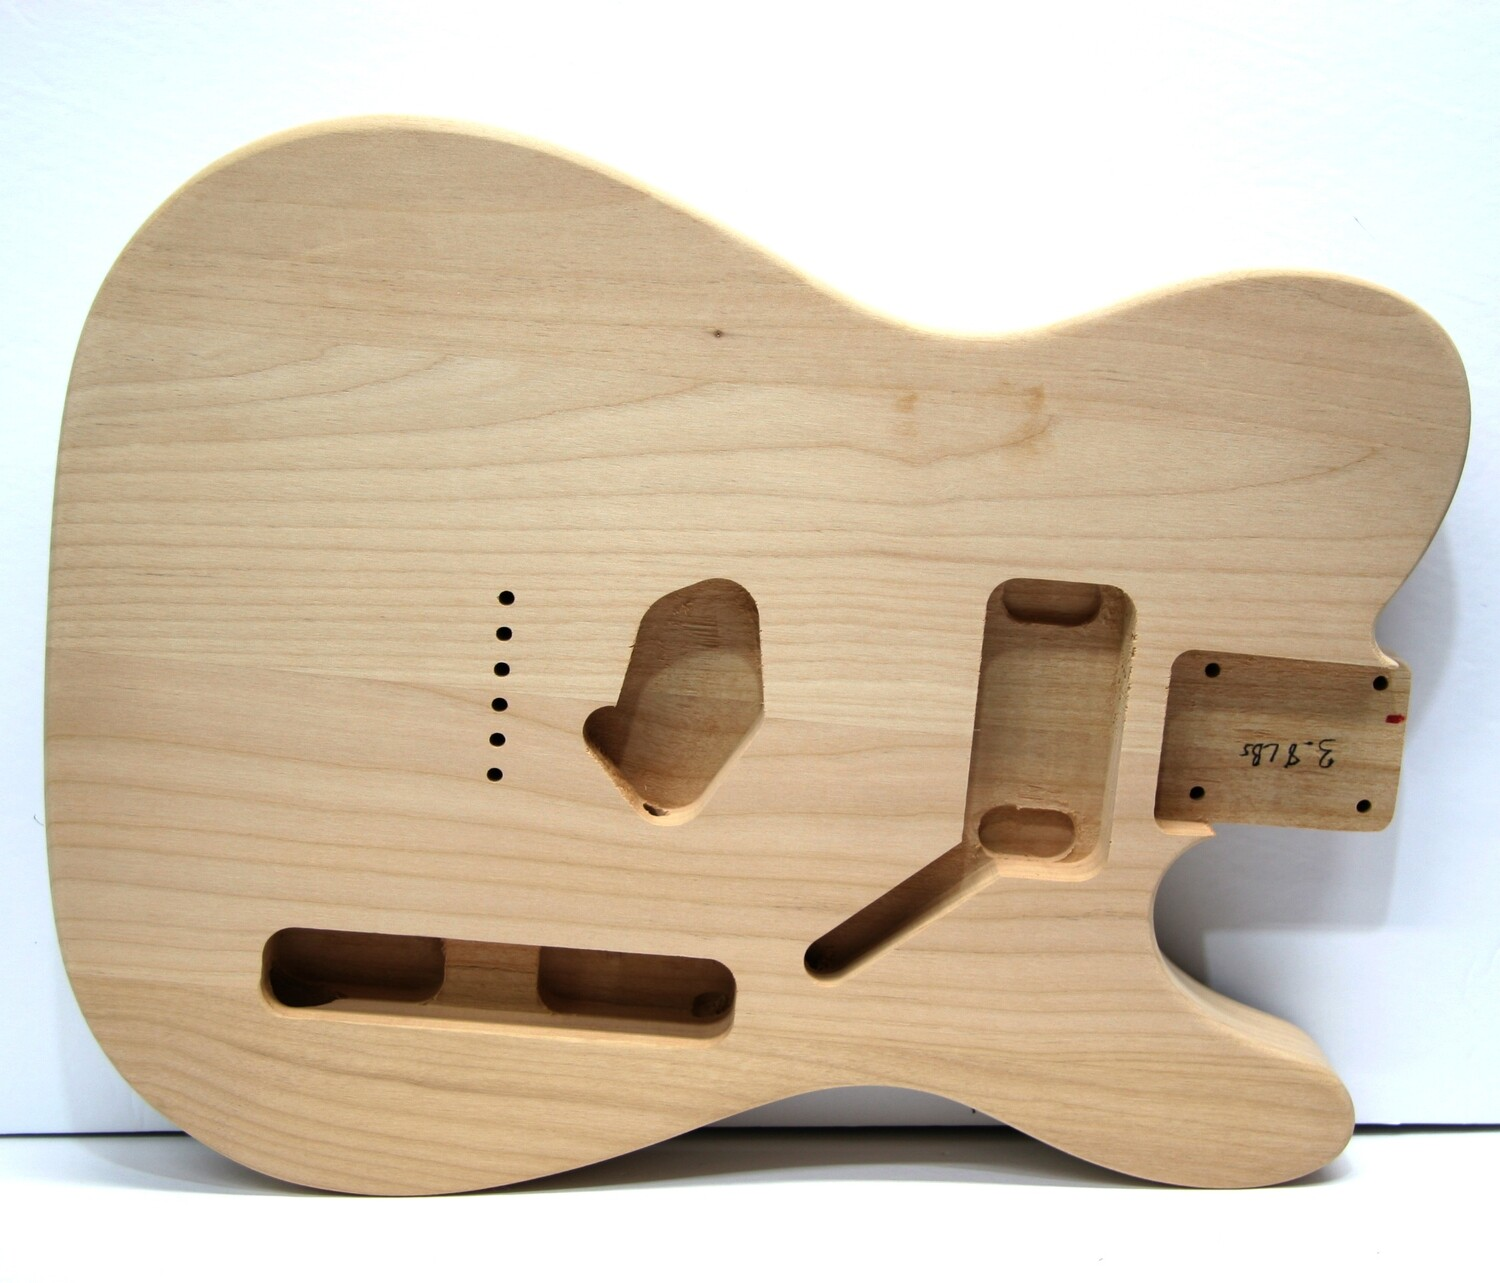 Brio Tele Body HS Config, Unpainted 3 PC Alder